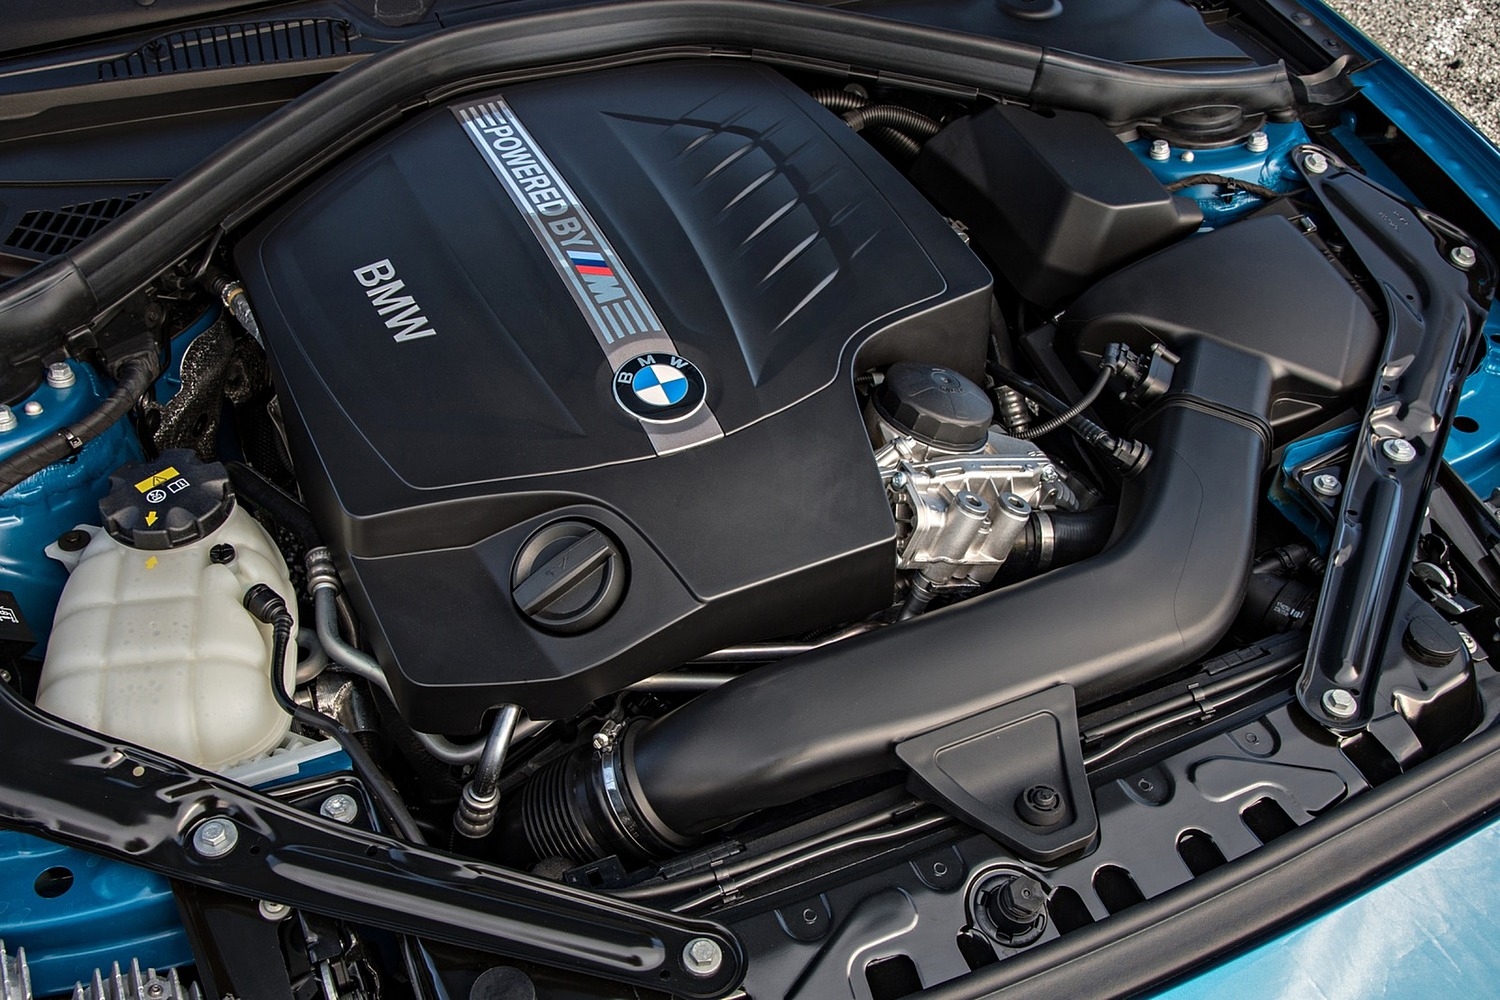 BMW M2 Coupe 3.0L V6 Turbo Engine (2016 model year shown)